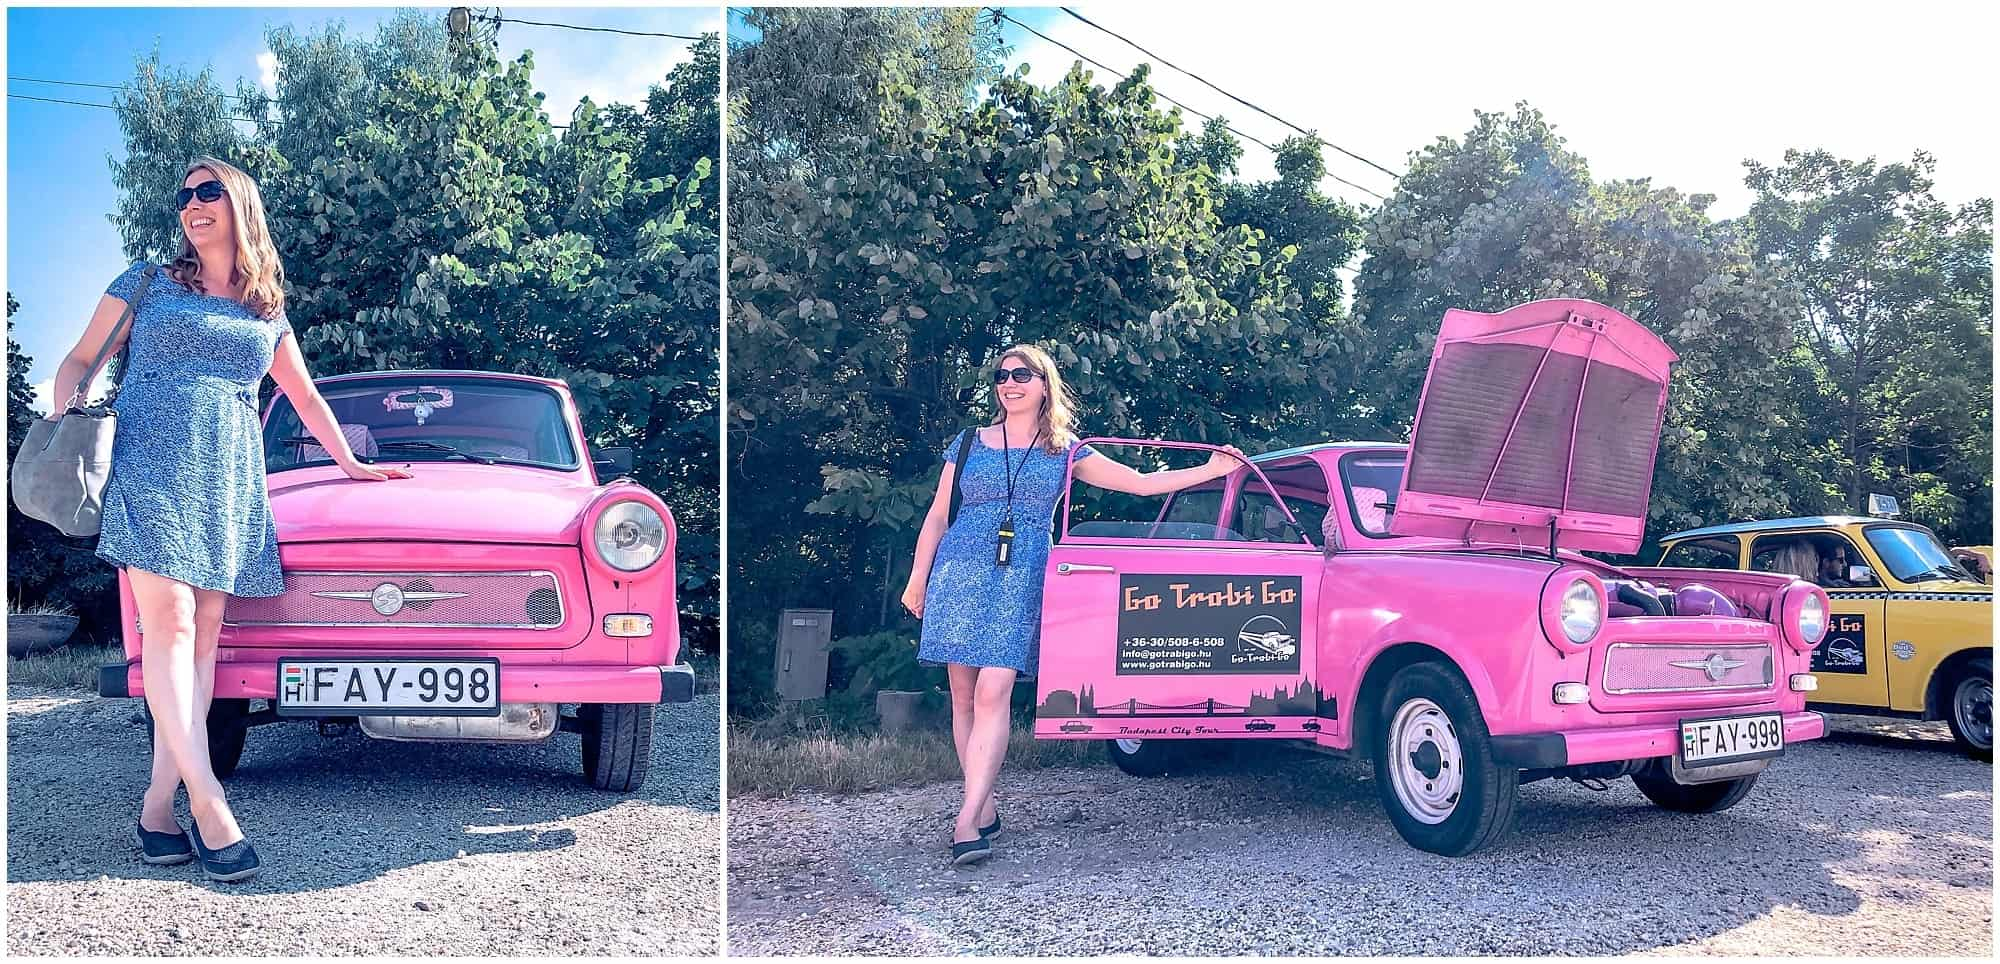 Abigail King and pink trabant in Budapest